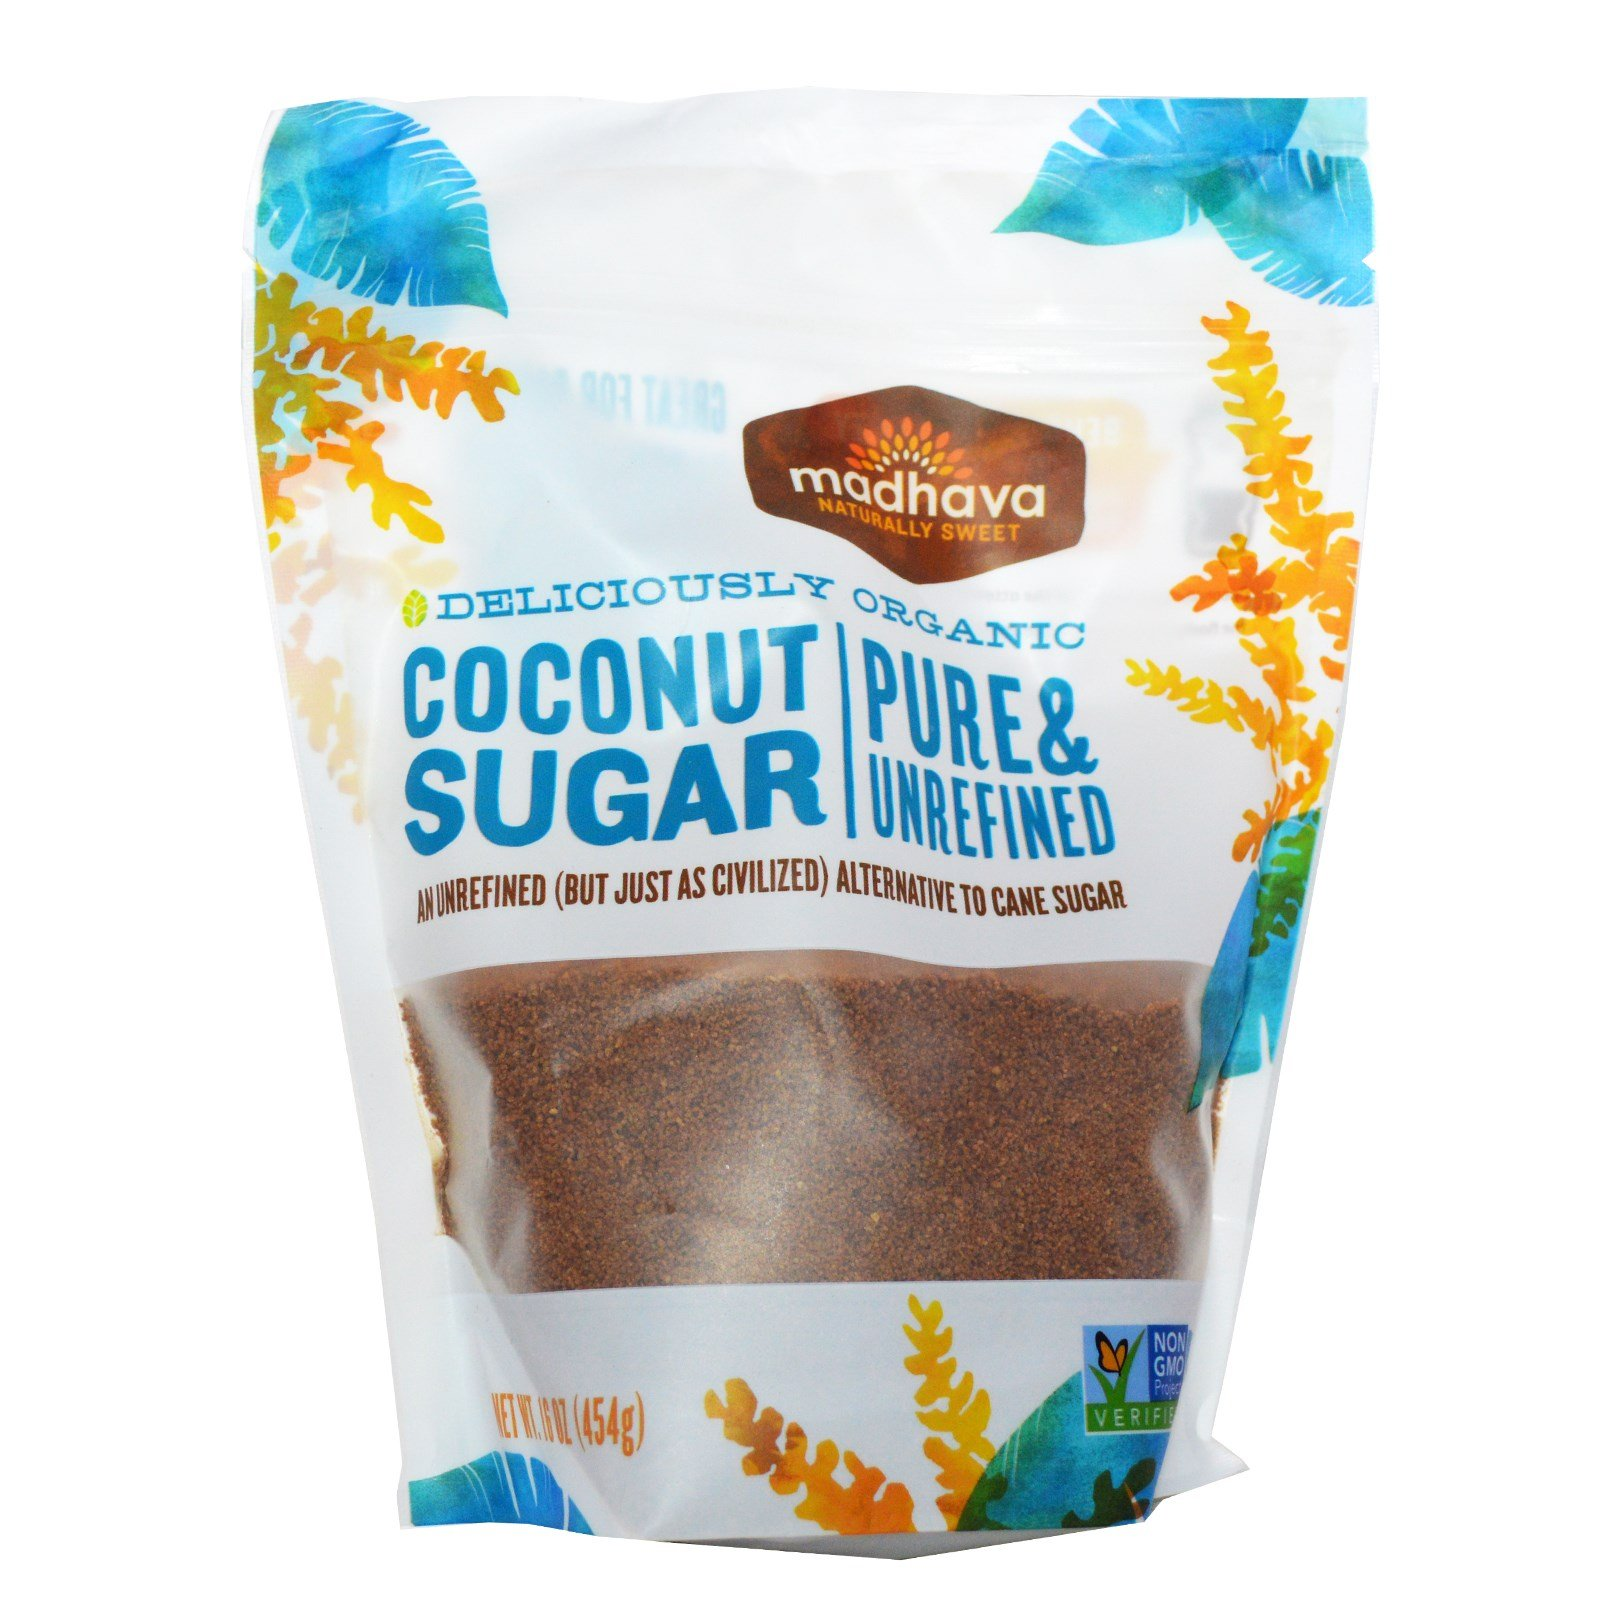 Madhava Natural Sweeteners, Deliciously Organic Coconut Sugar, 1 lb (454 g) Madhava Natural Sweeteners, Deliciously Organic Coconut Sugar, 1 lb (454 g) - 2pcs